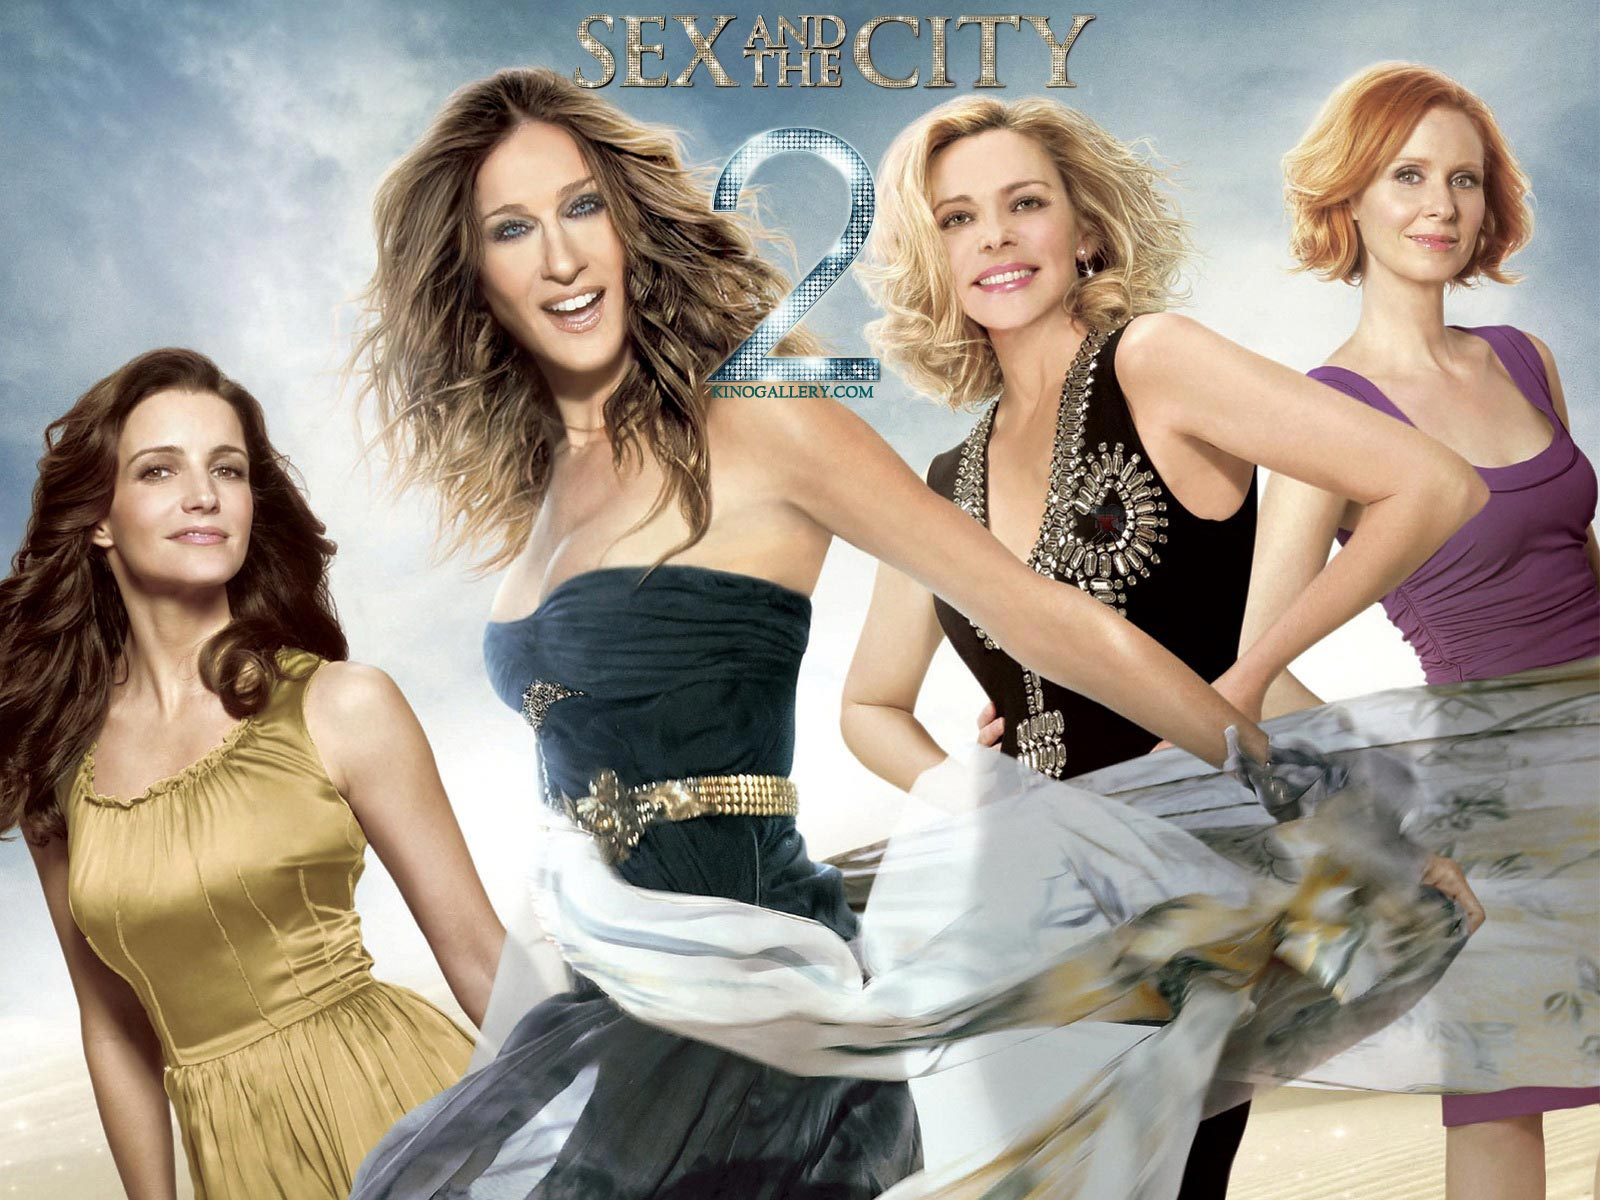 Sex and the City returning - without Kim Cattrall! - Moviehole